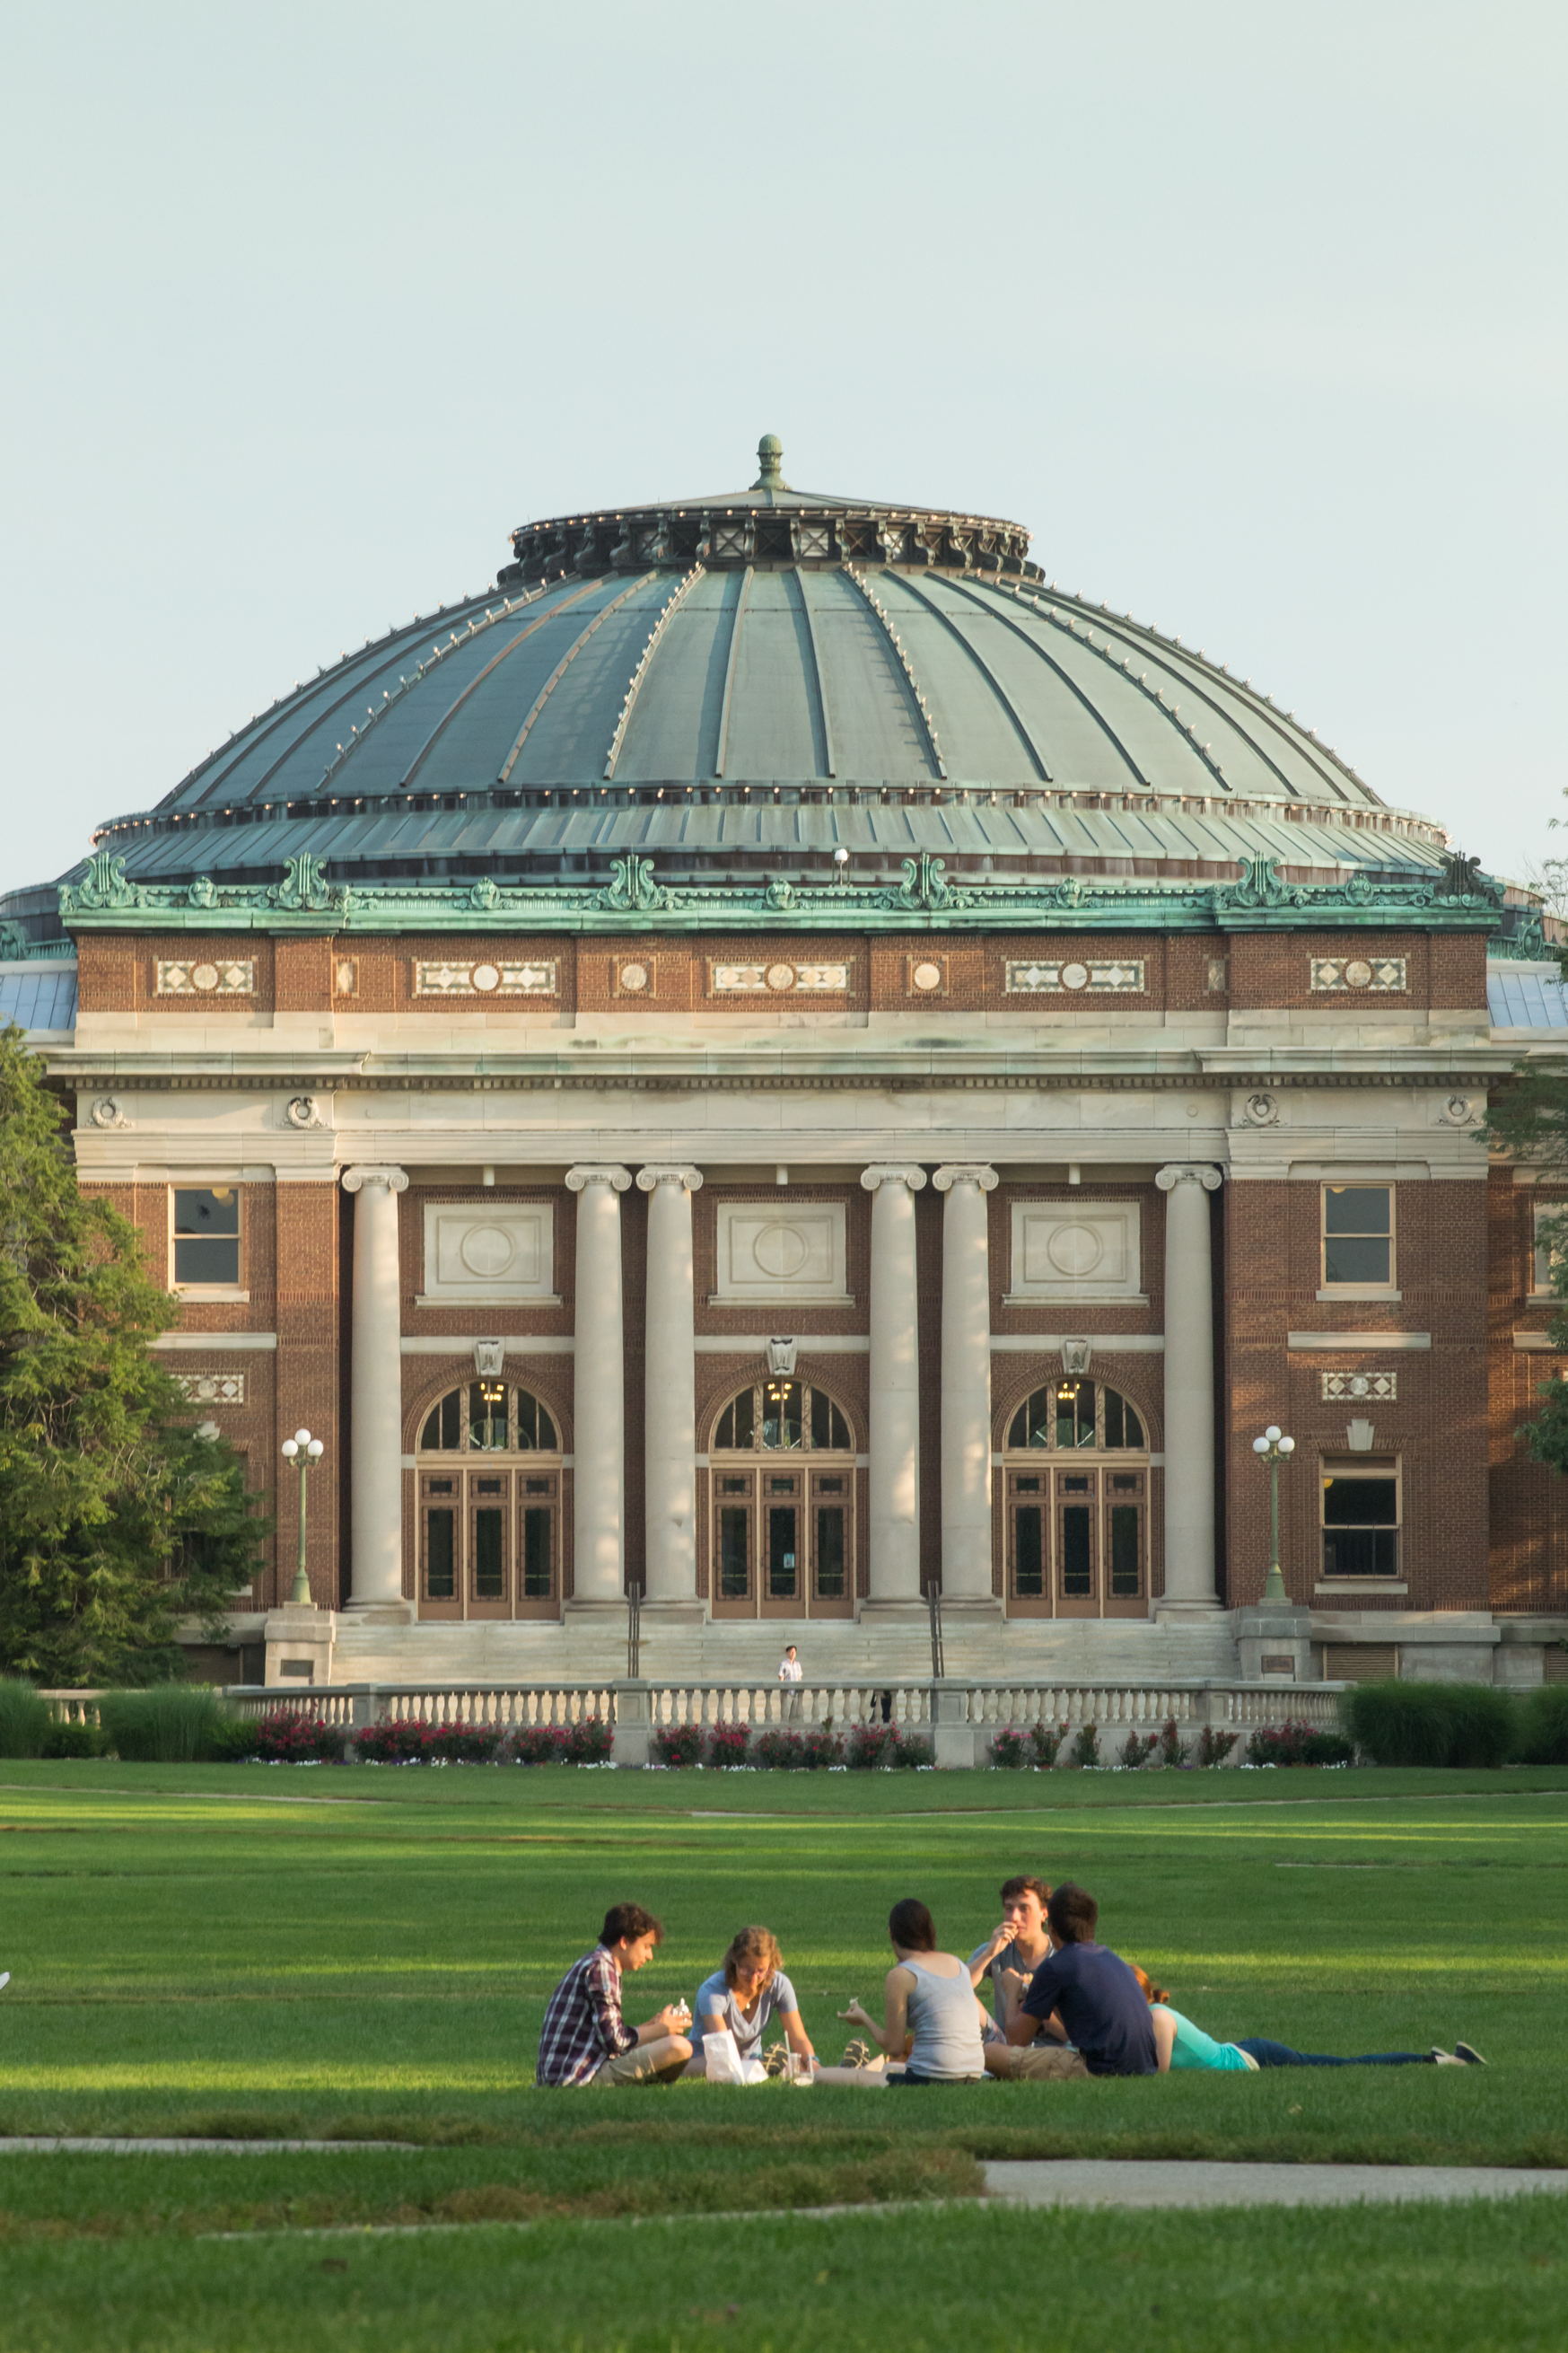 Foellinger Auditorium at the University of Illinois at Urbana-Champaign